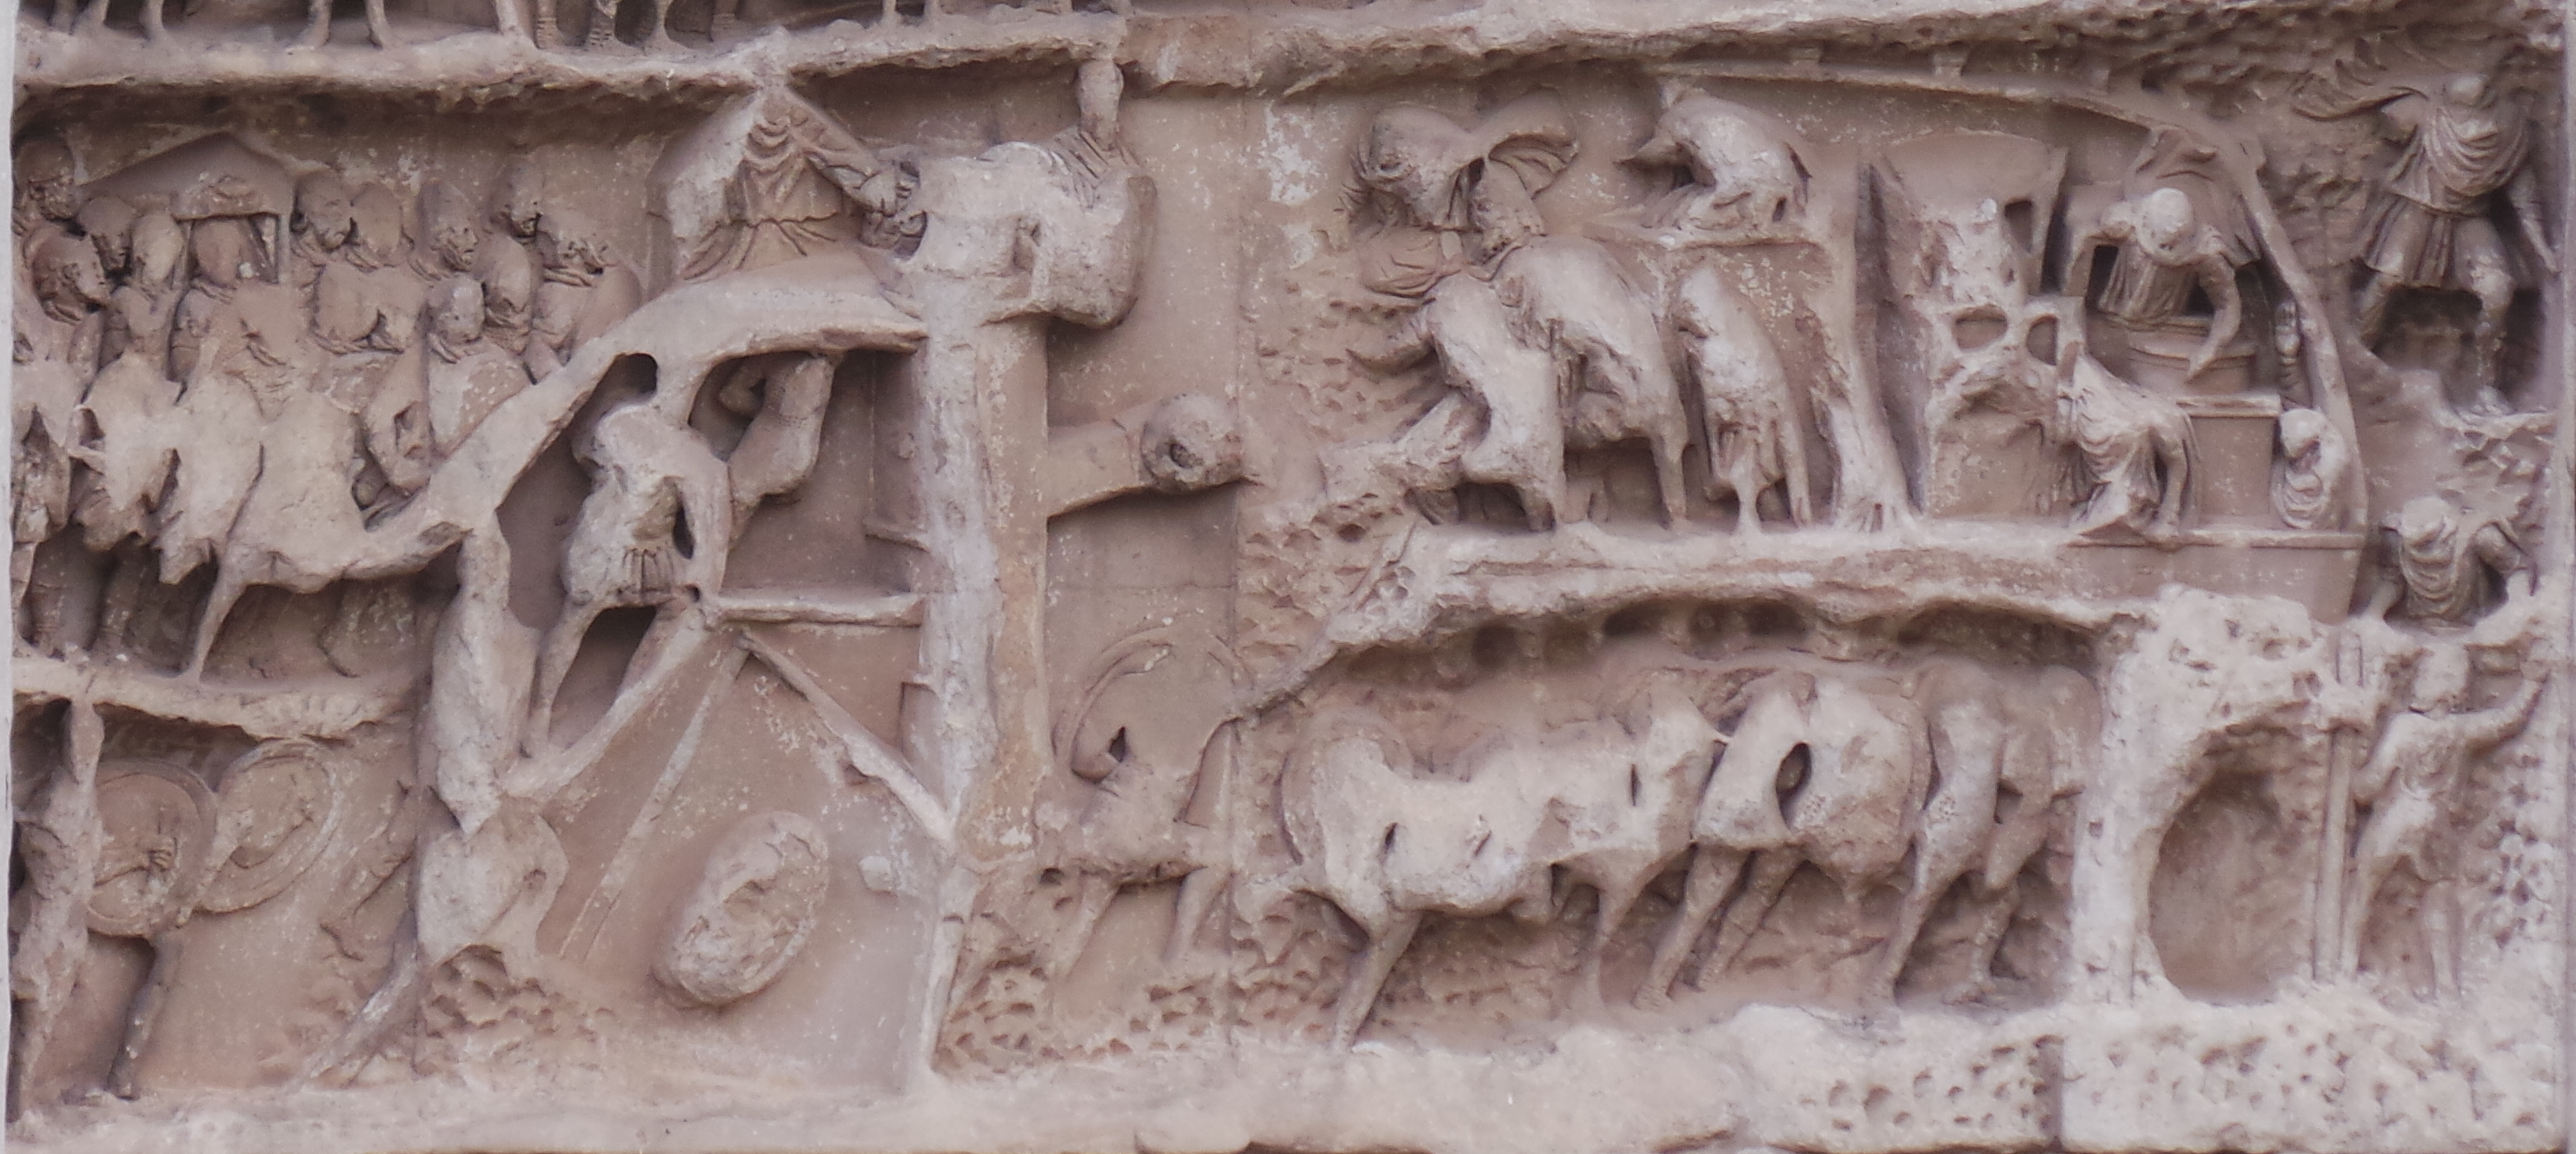 Triumphal Arch of Septimius Severus: Relief depicting the siege of Ctesiphon